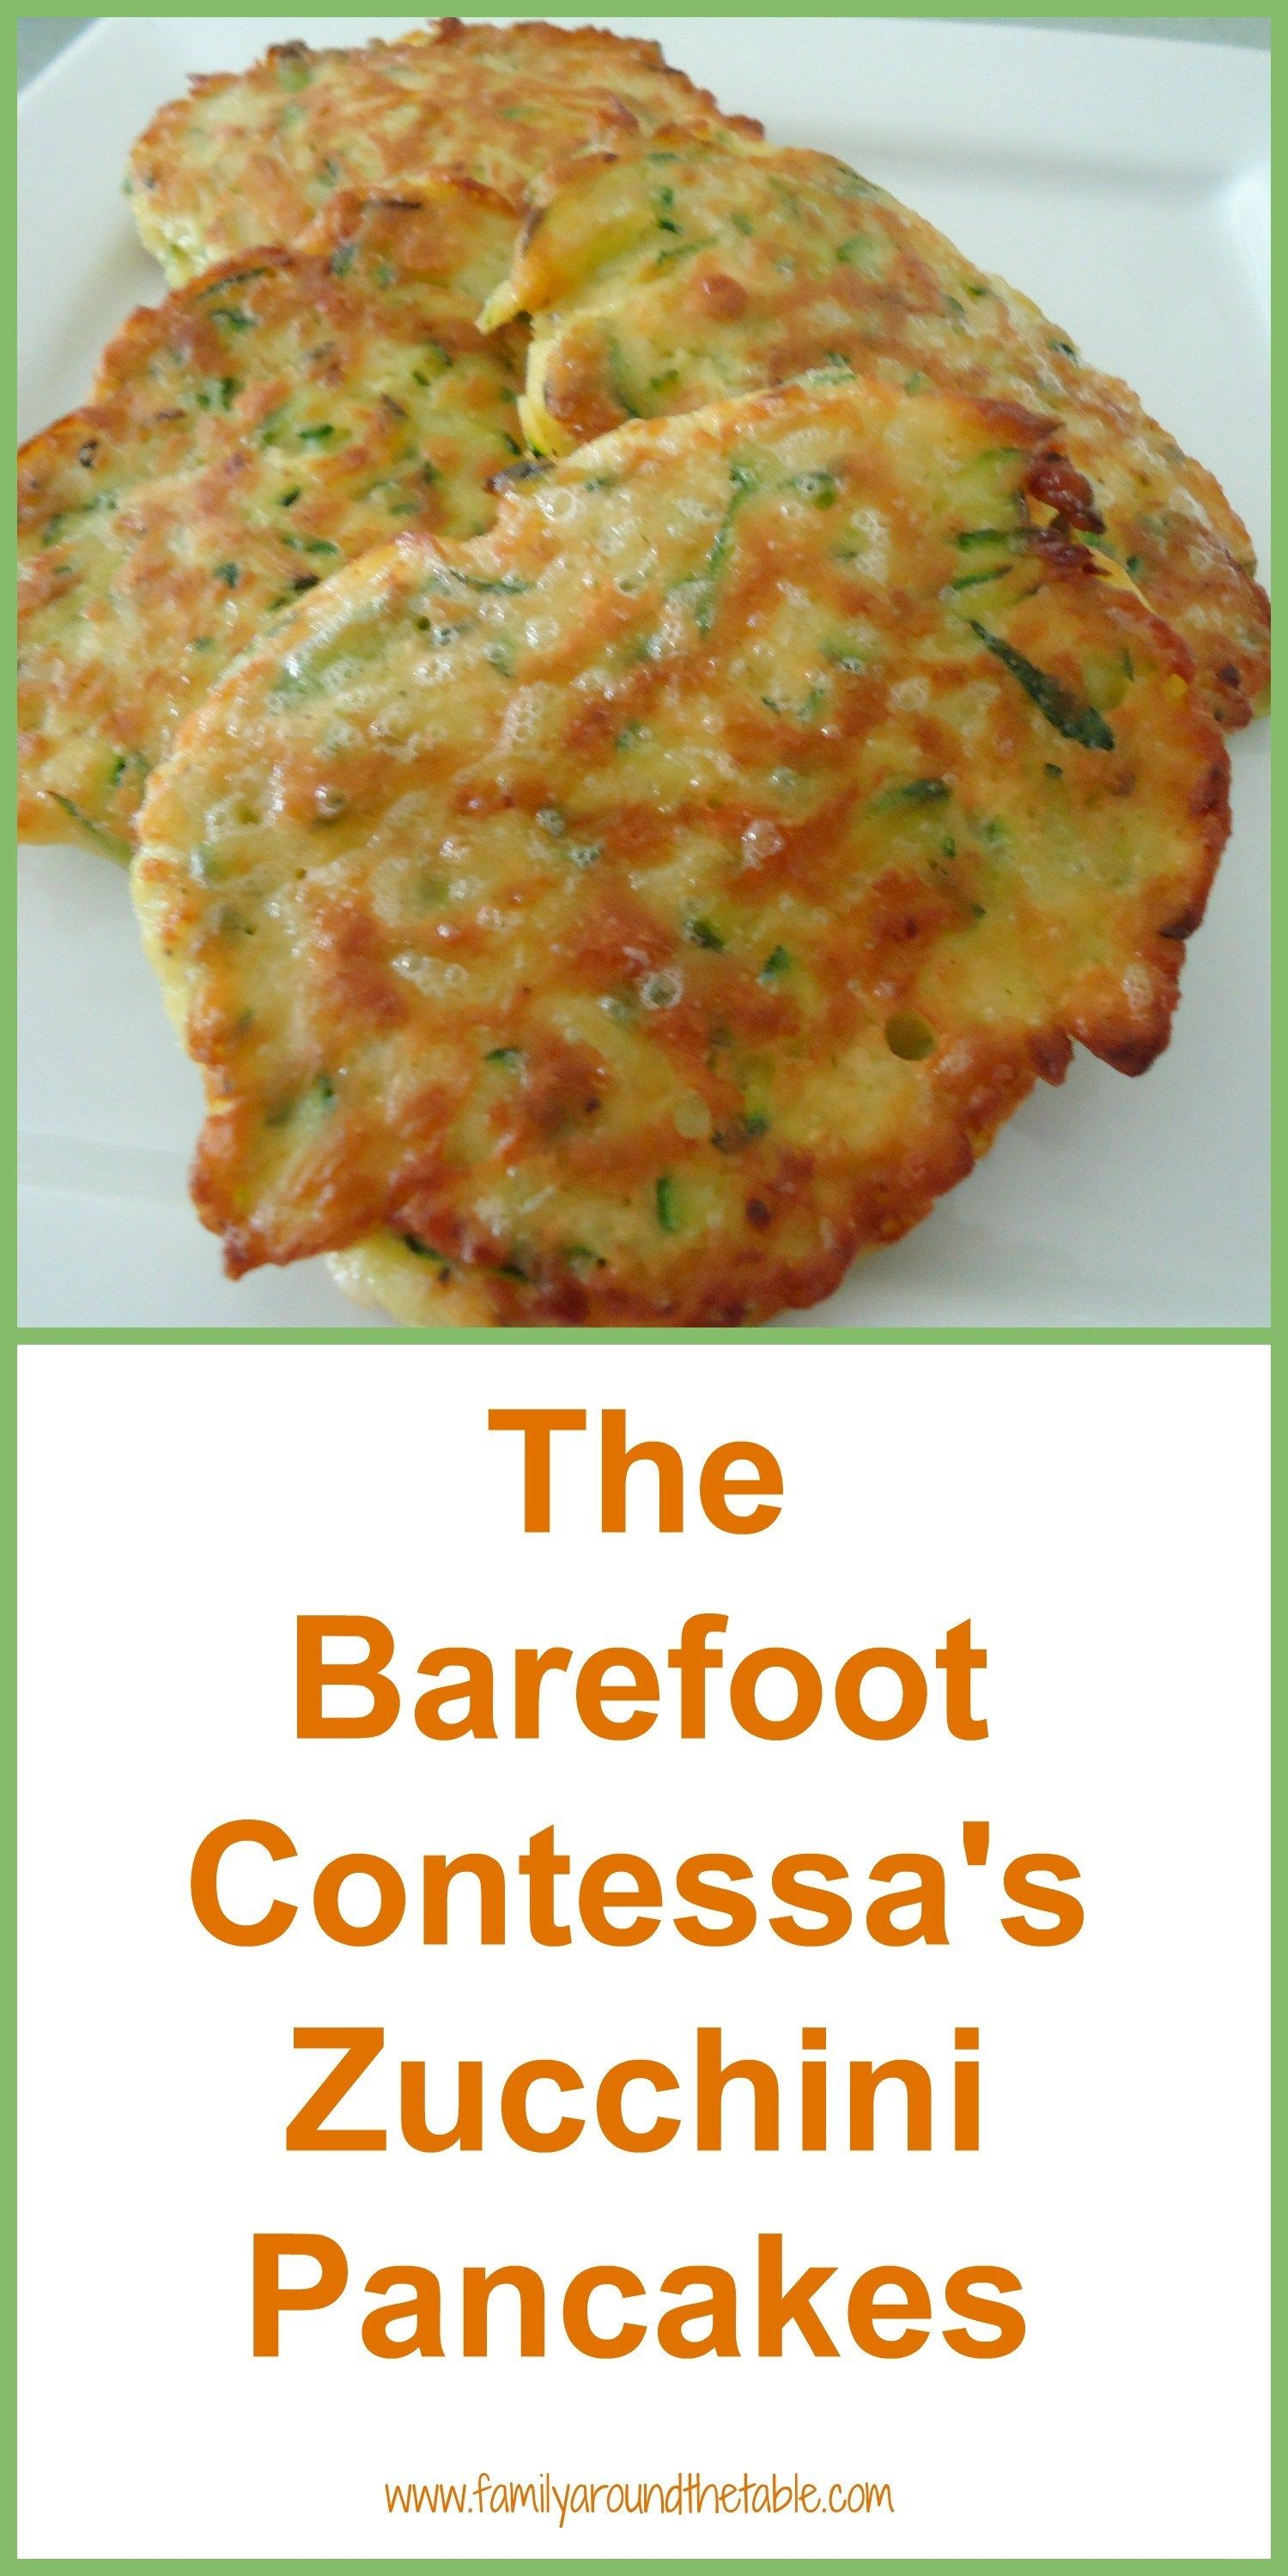 The Barefoot Contessa's Zucchini Pancakes images